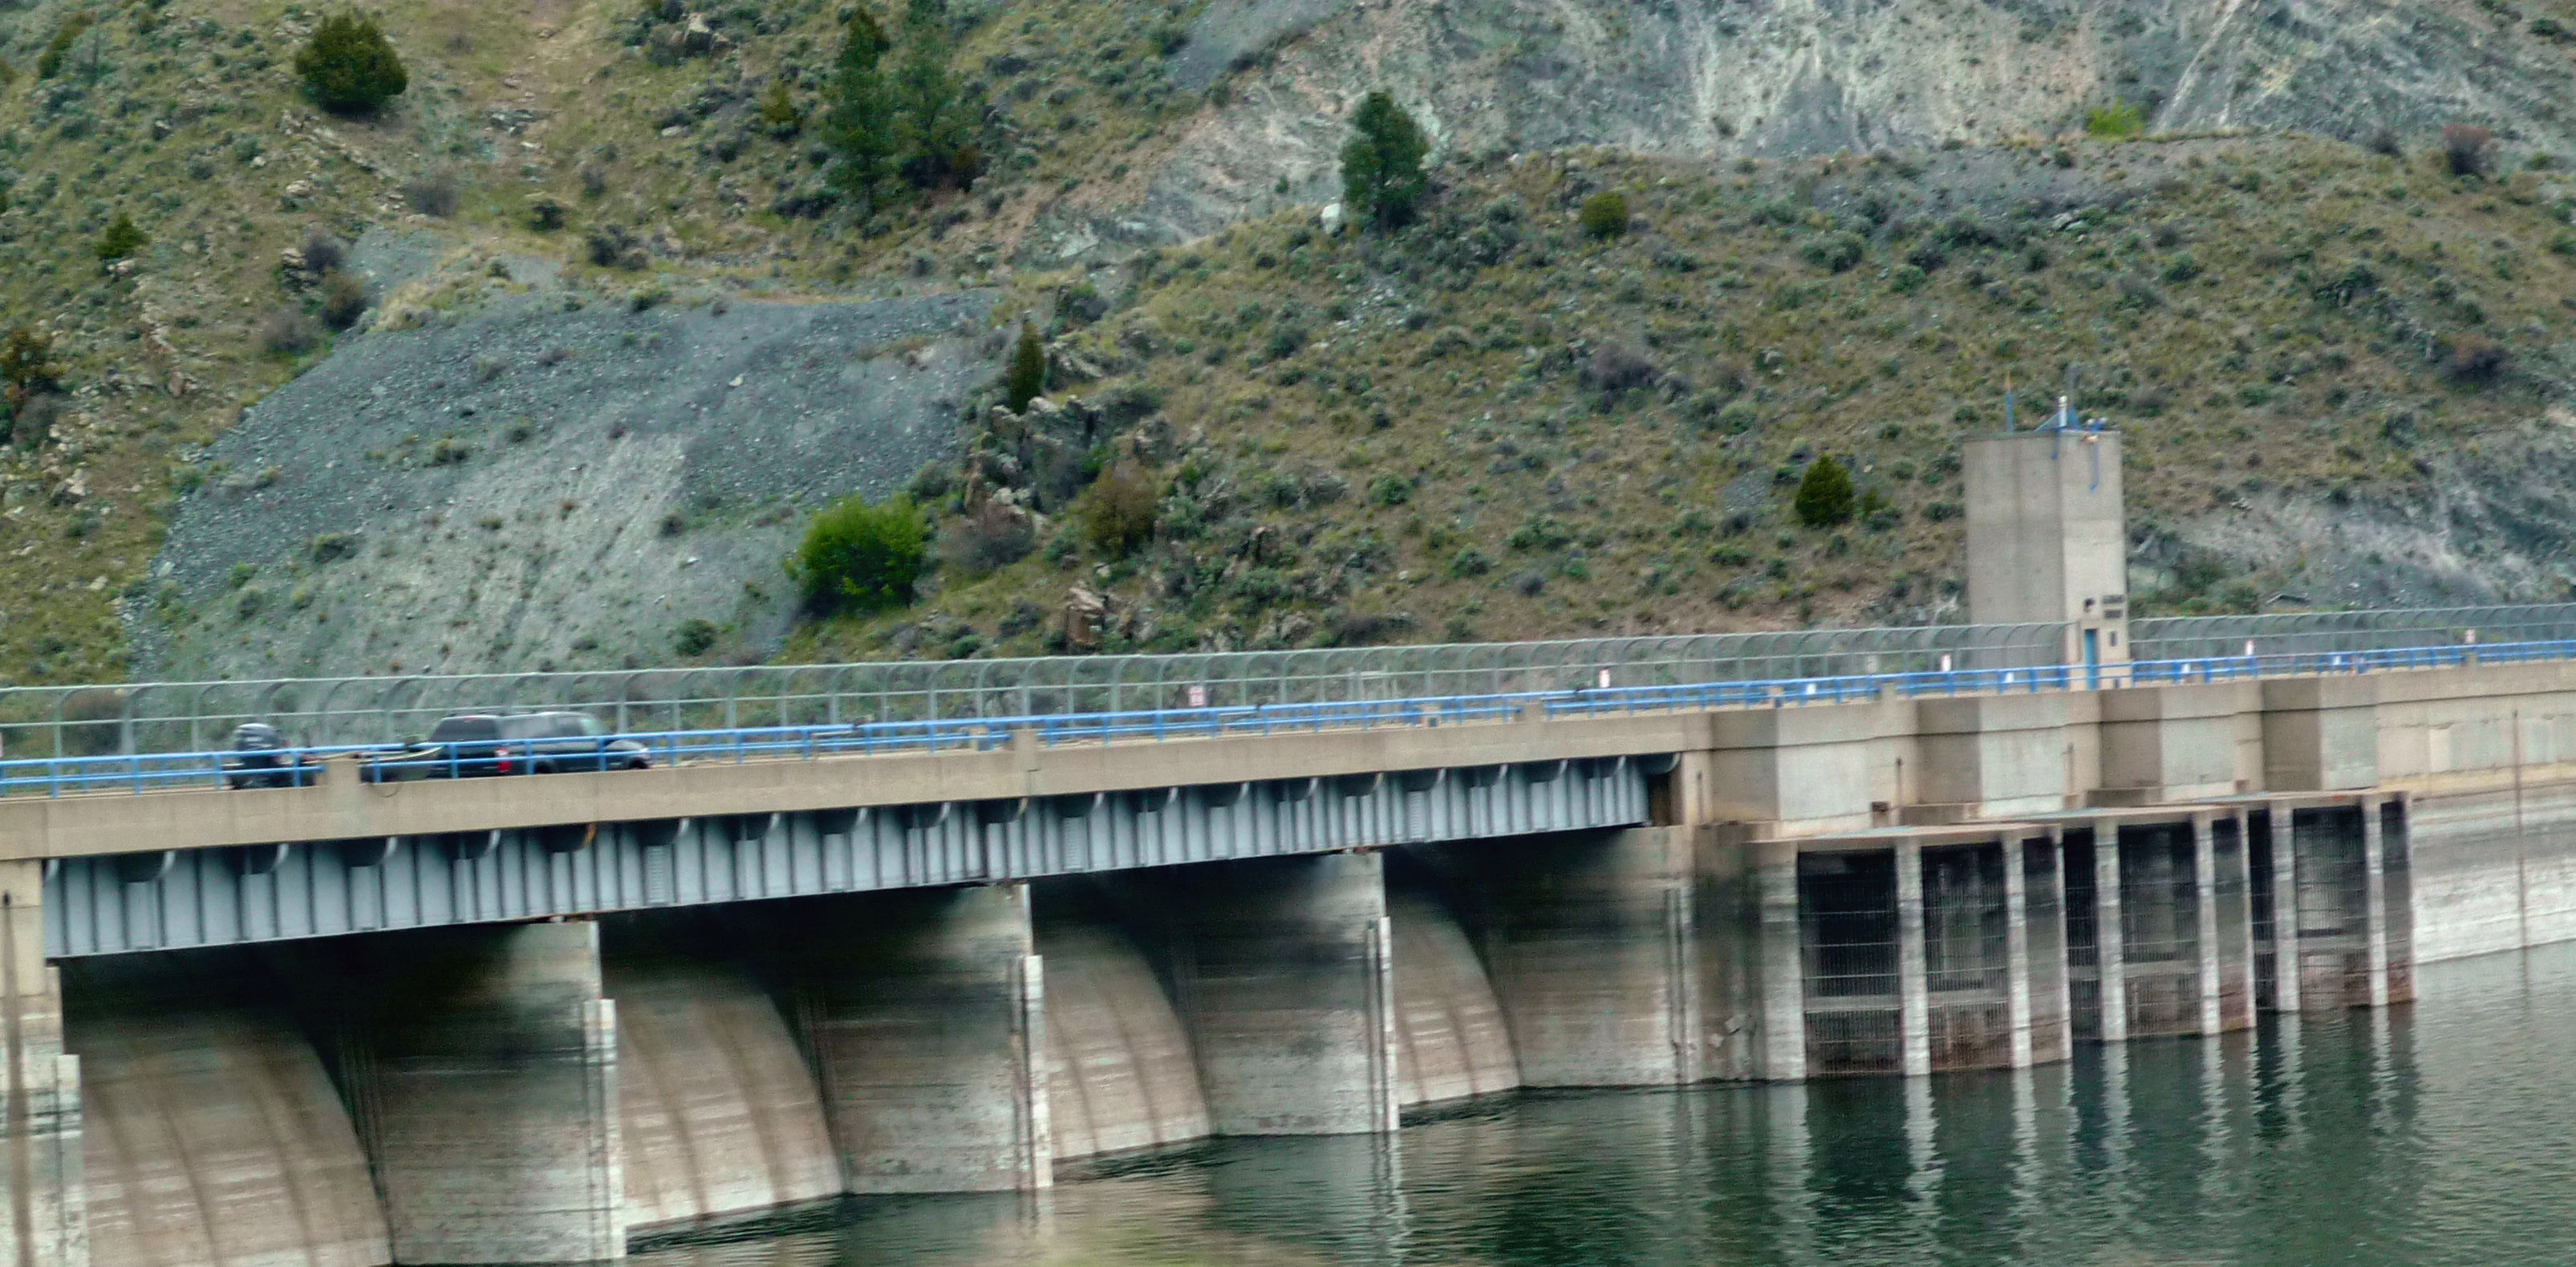 canyon dam dating The age of the earth and the formation of the universe by introducing the breached dam dating is not a viable method for dating the grand canyon.